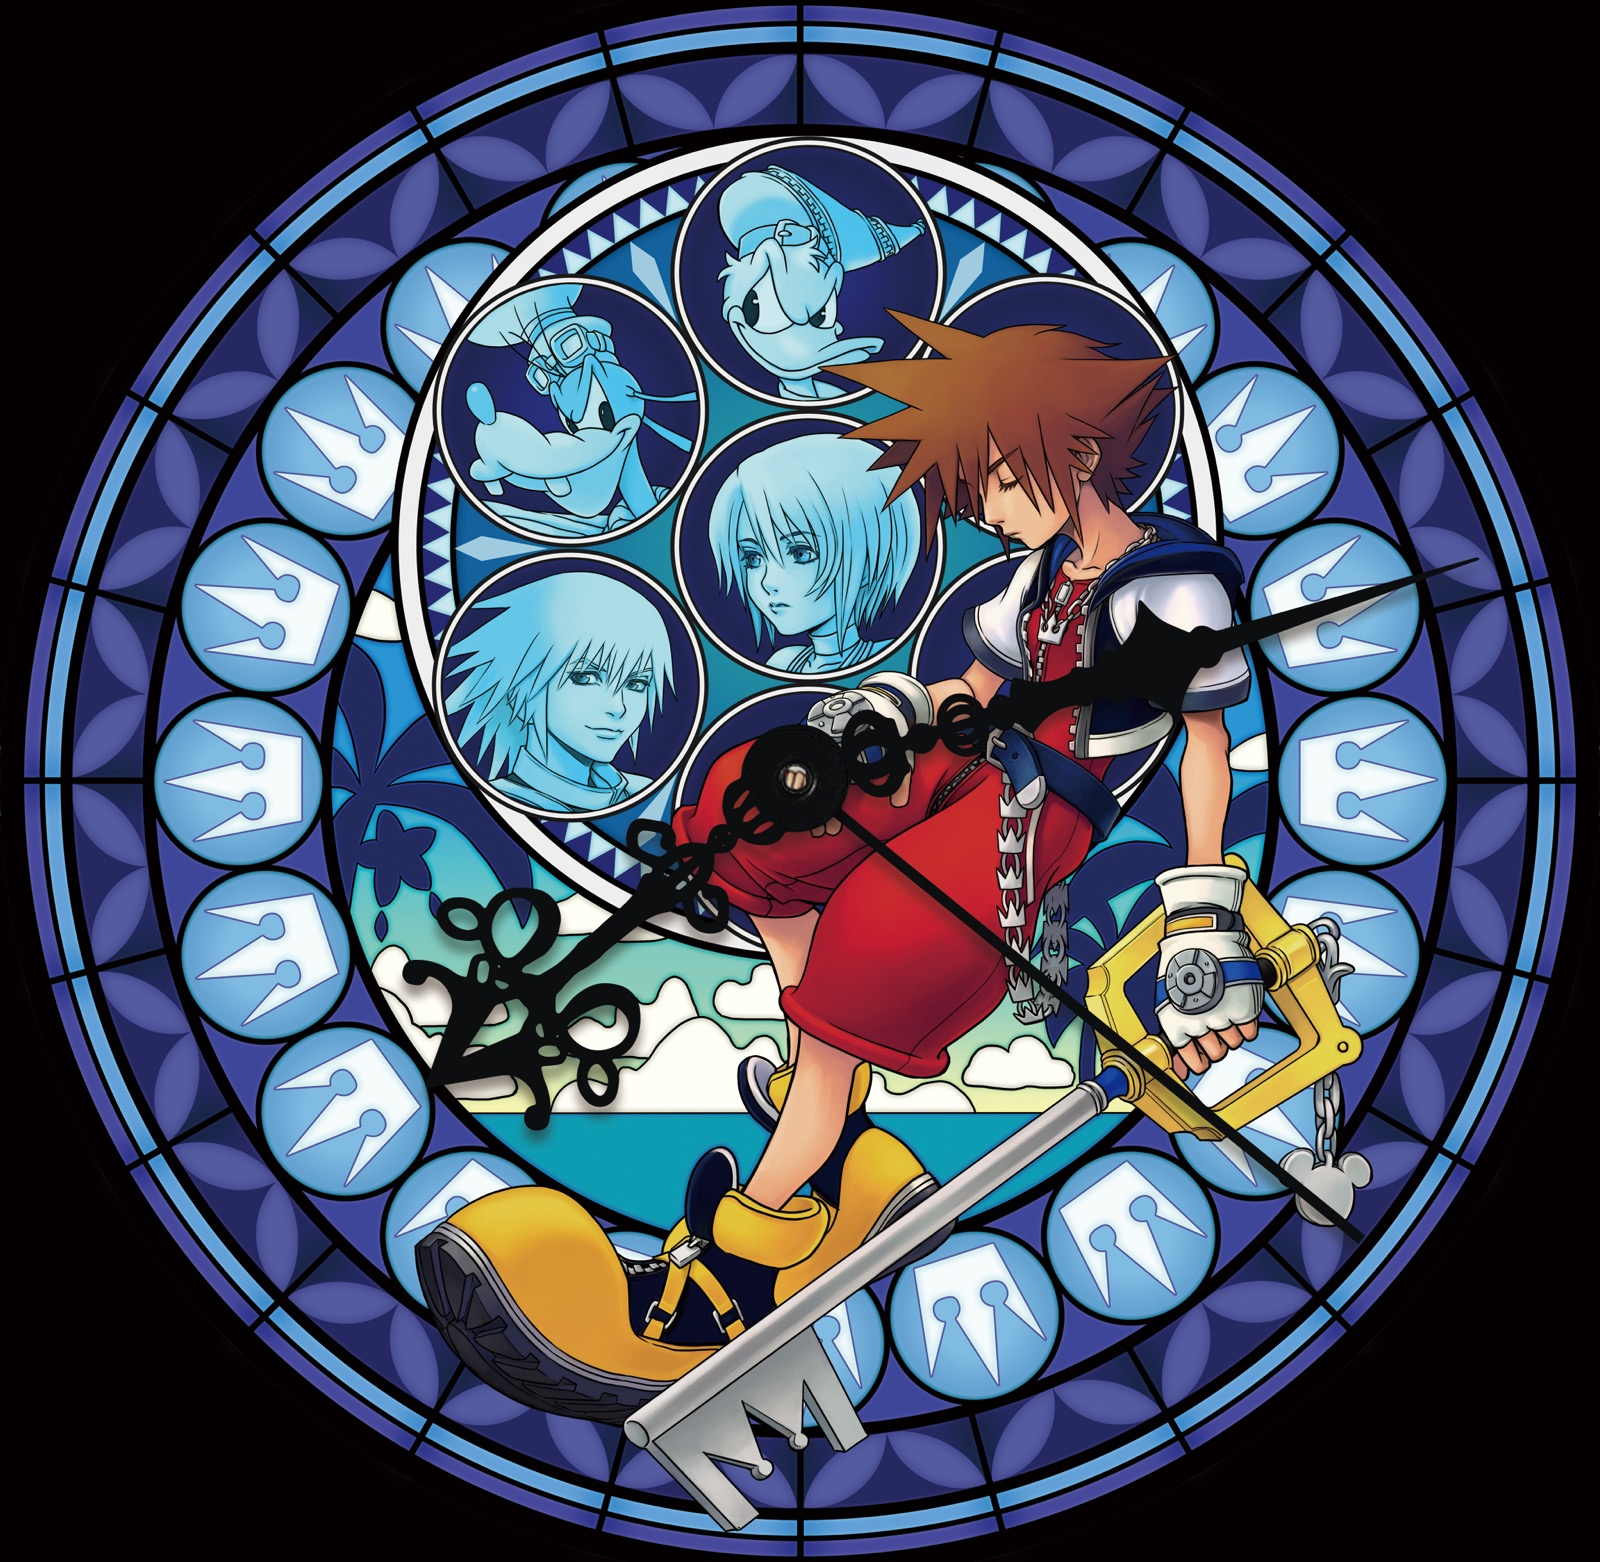 Kingdom Hearts launches 15th anniversary 'Memorial Stained Glass Clock' campaign in Shinjuku ...